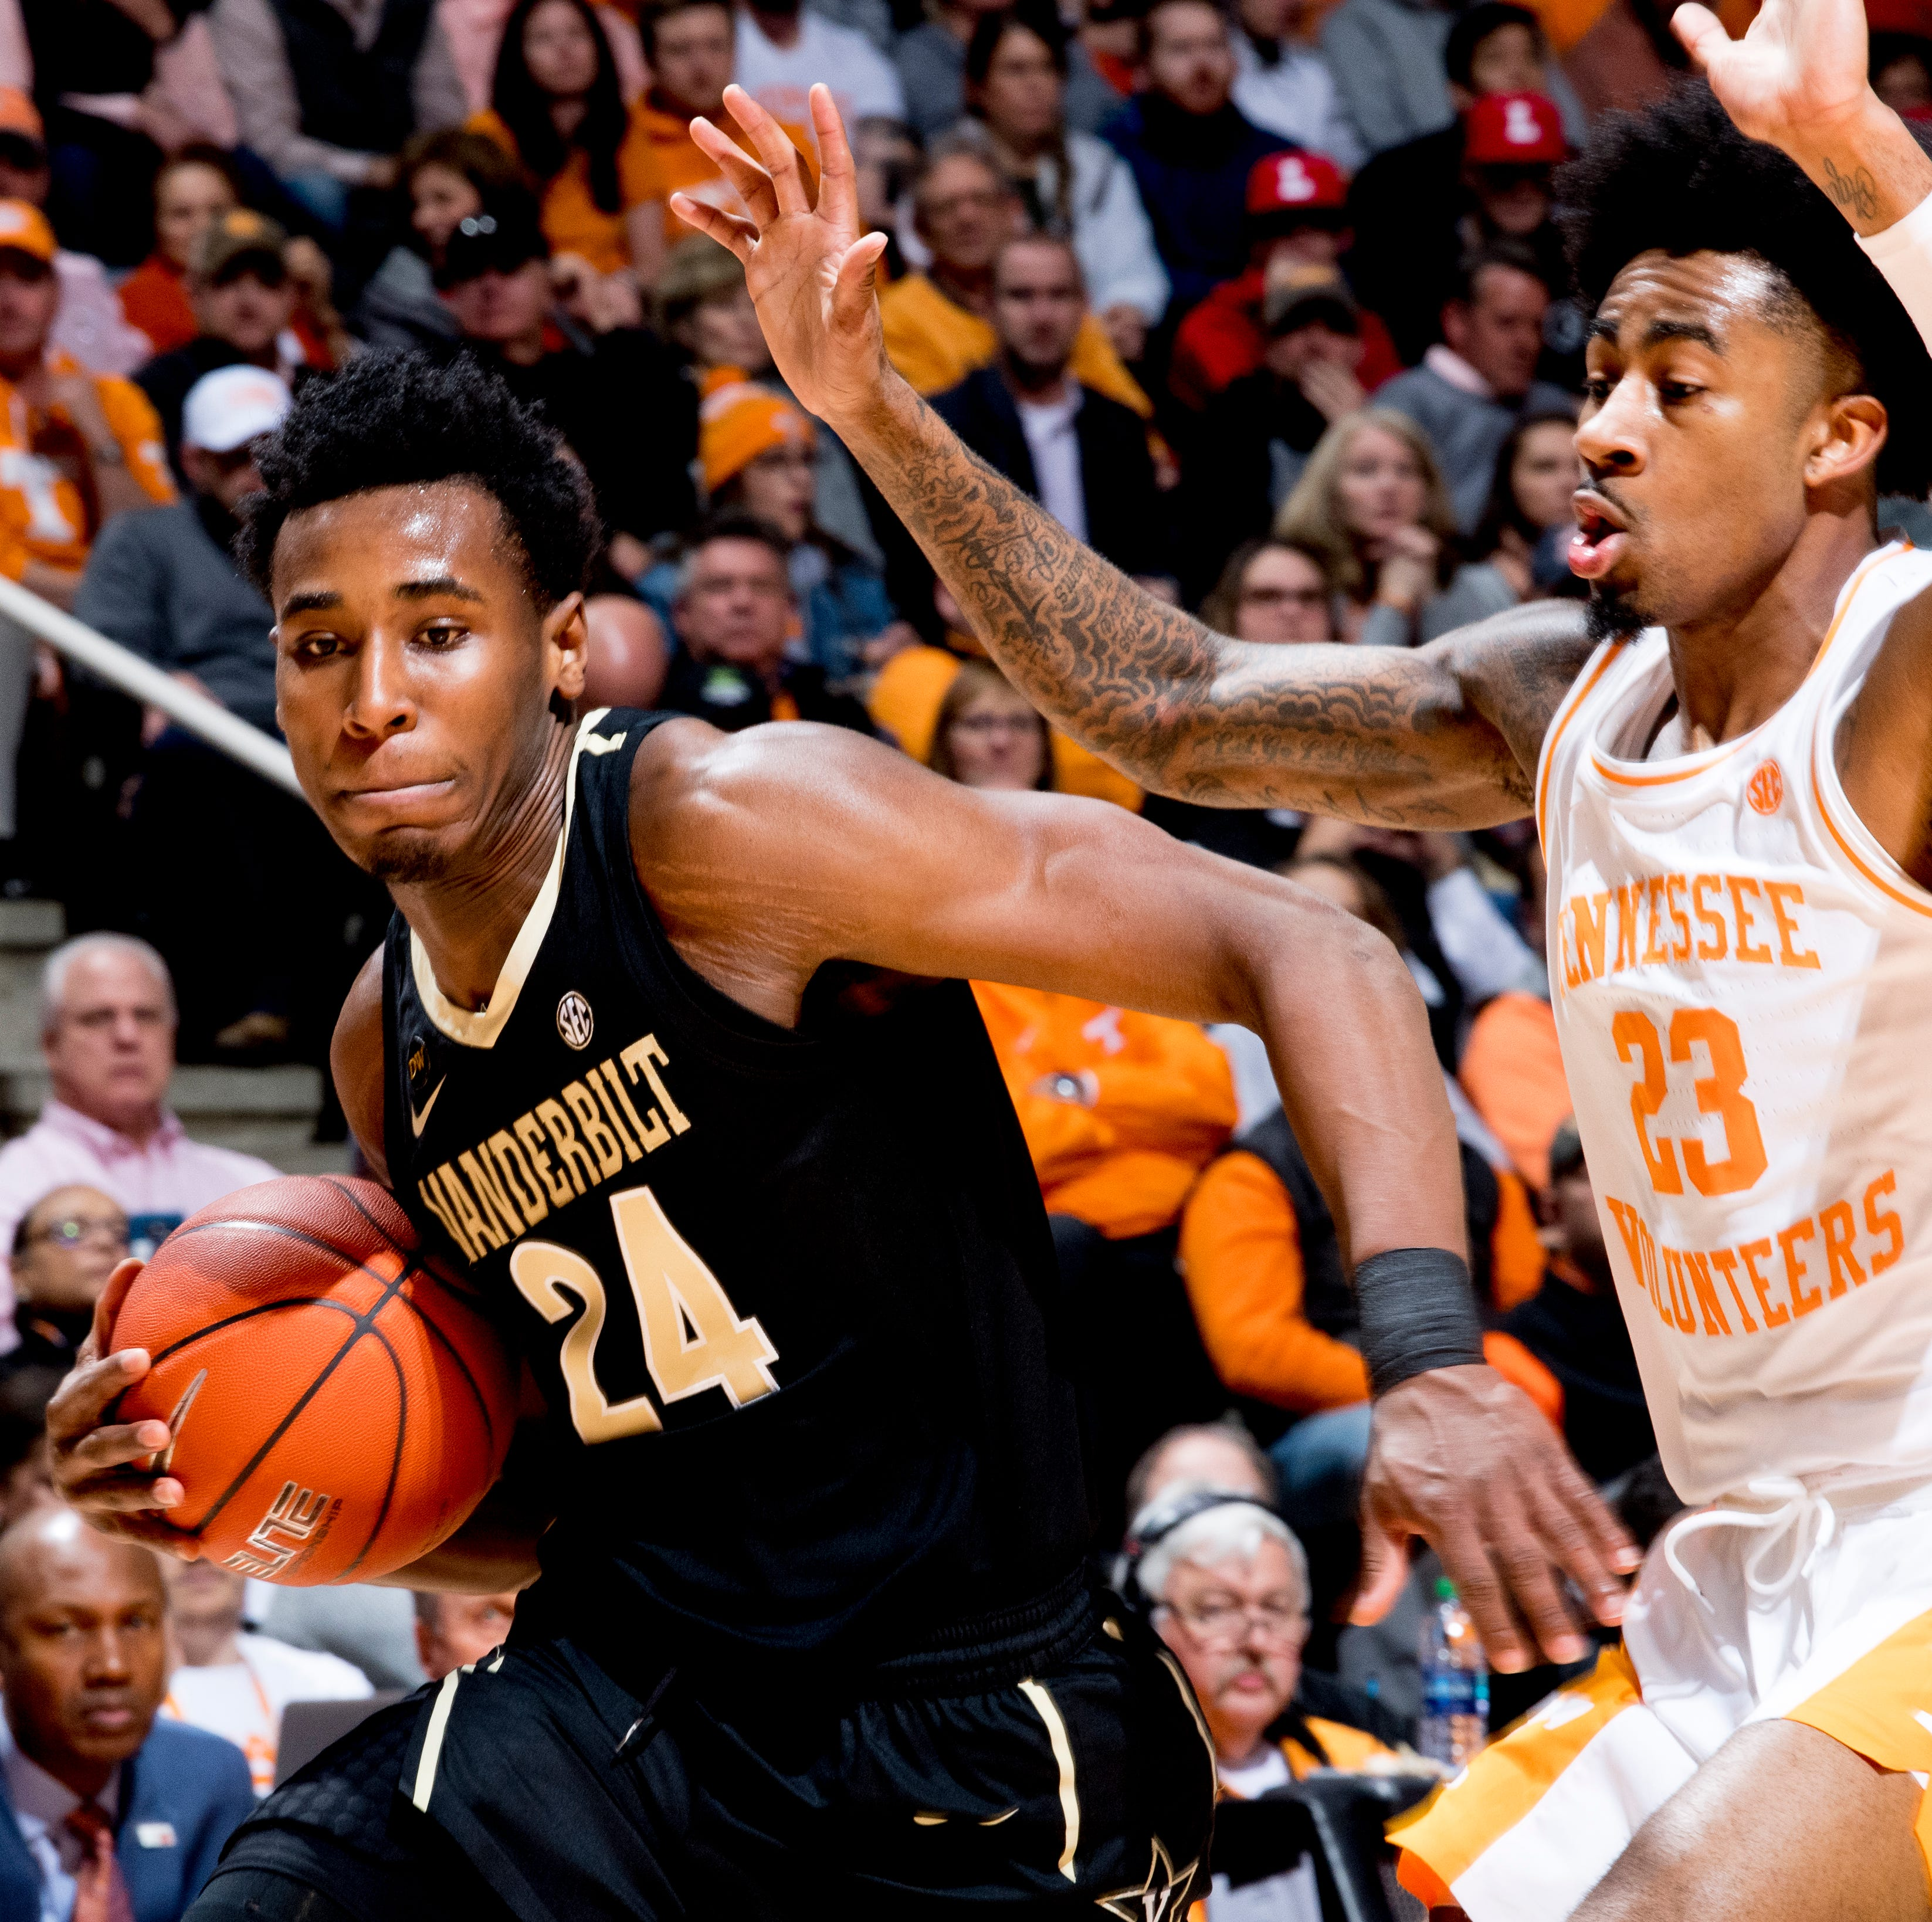 Vanderbilt falls to UT Vols for 14-game losing streak, longest in program history